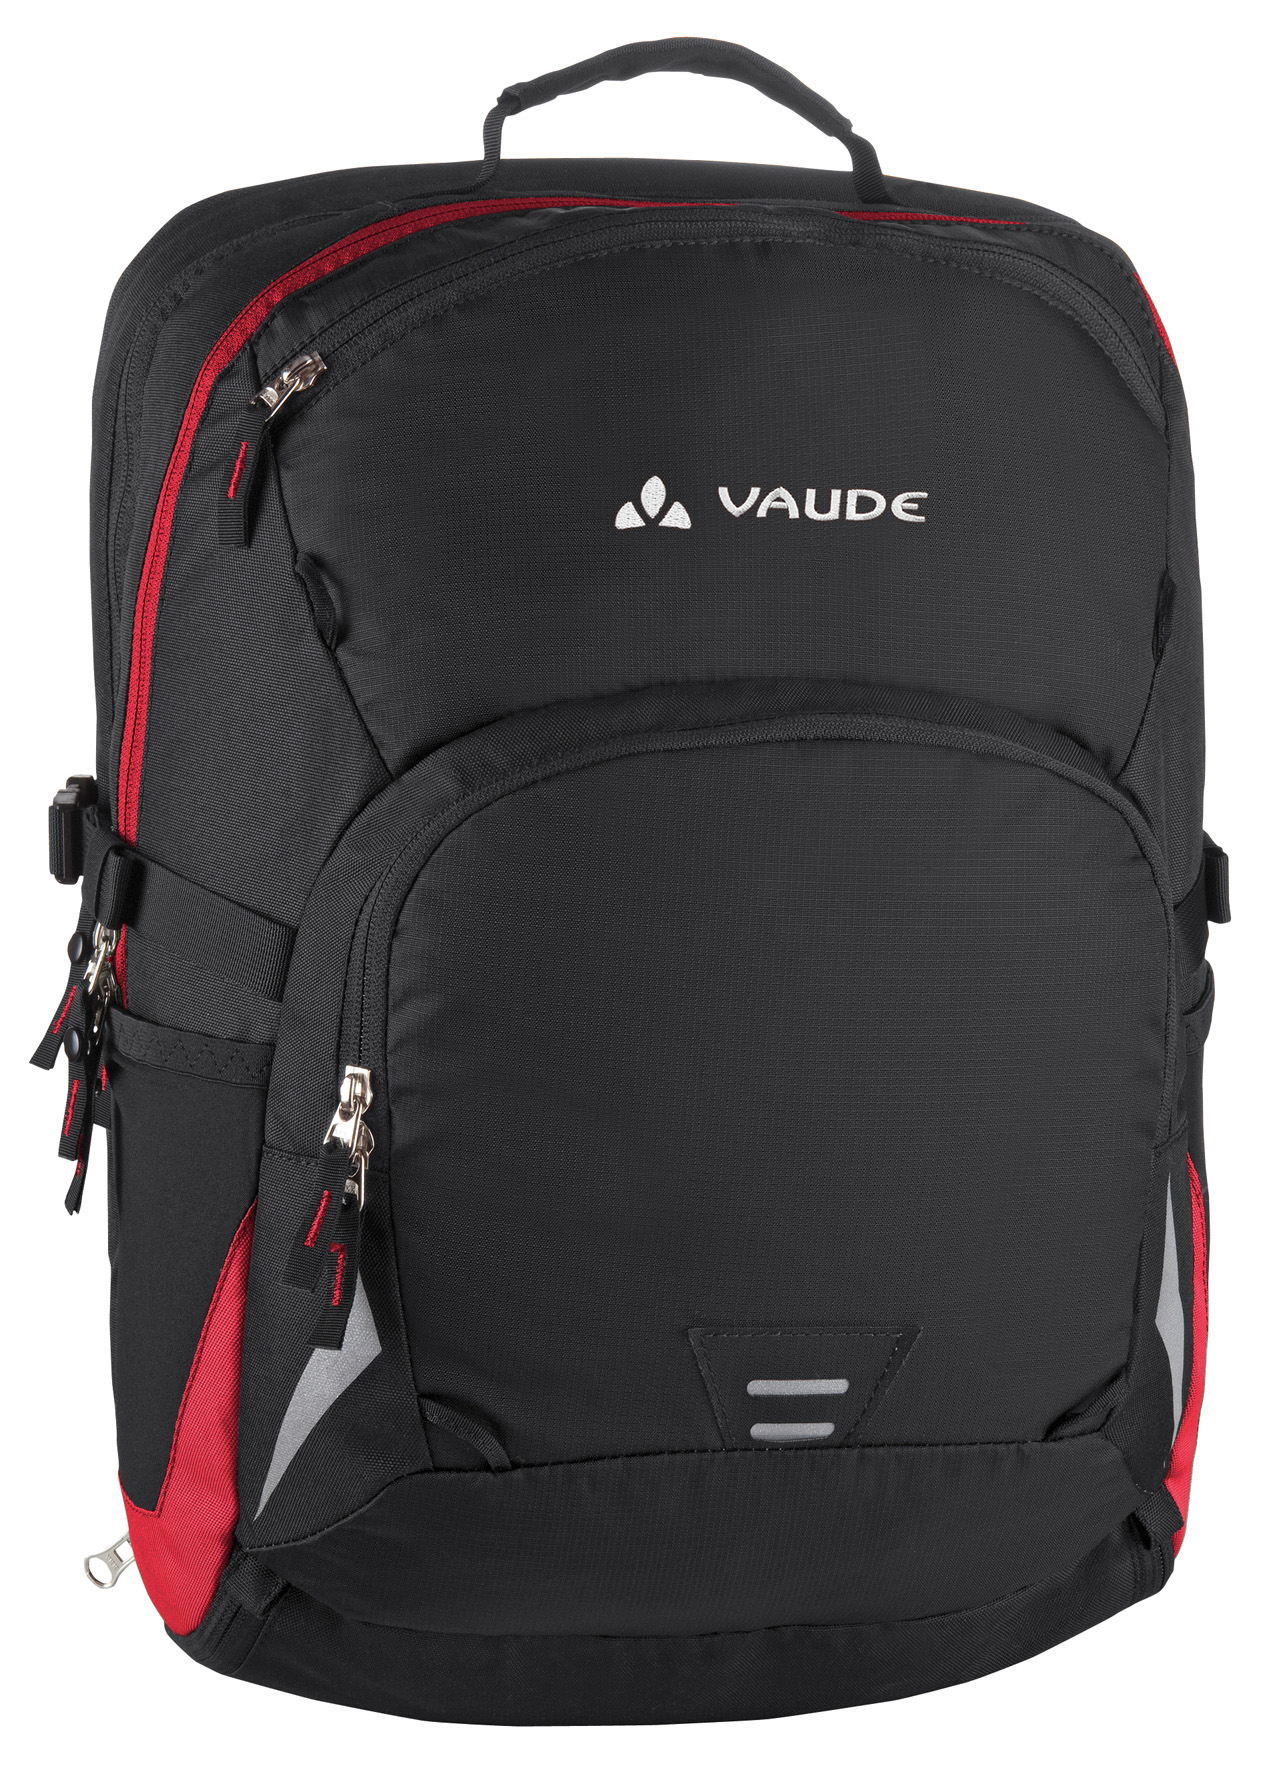 VAUDE Cycle 22 black/red  - schneider-sports